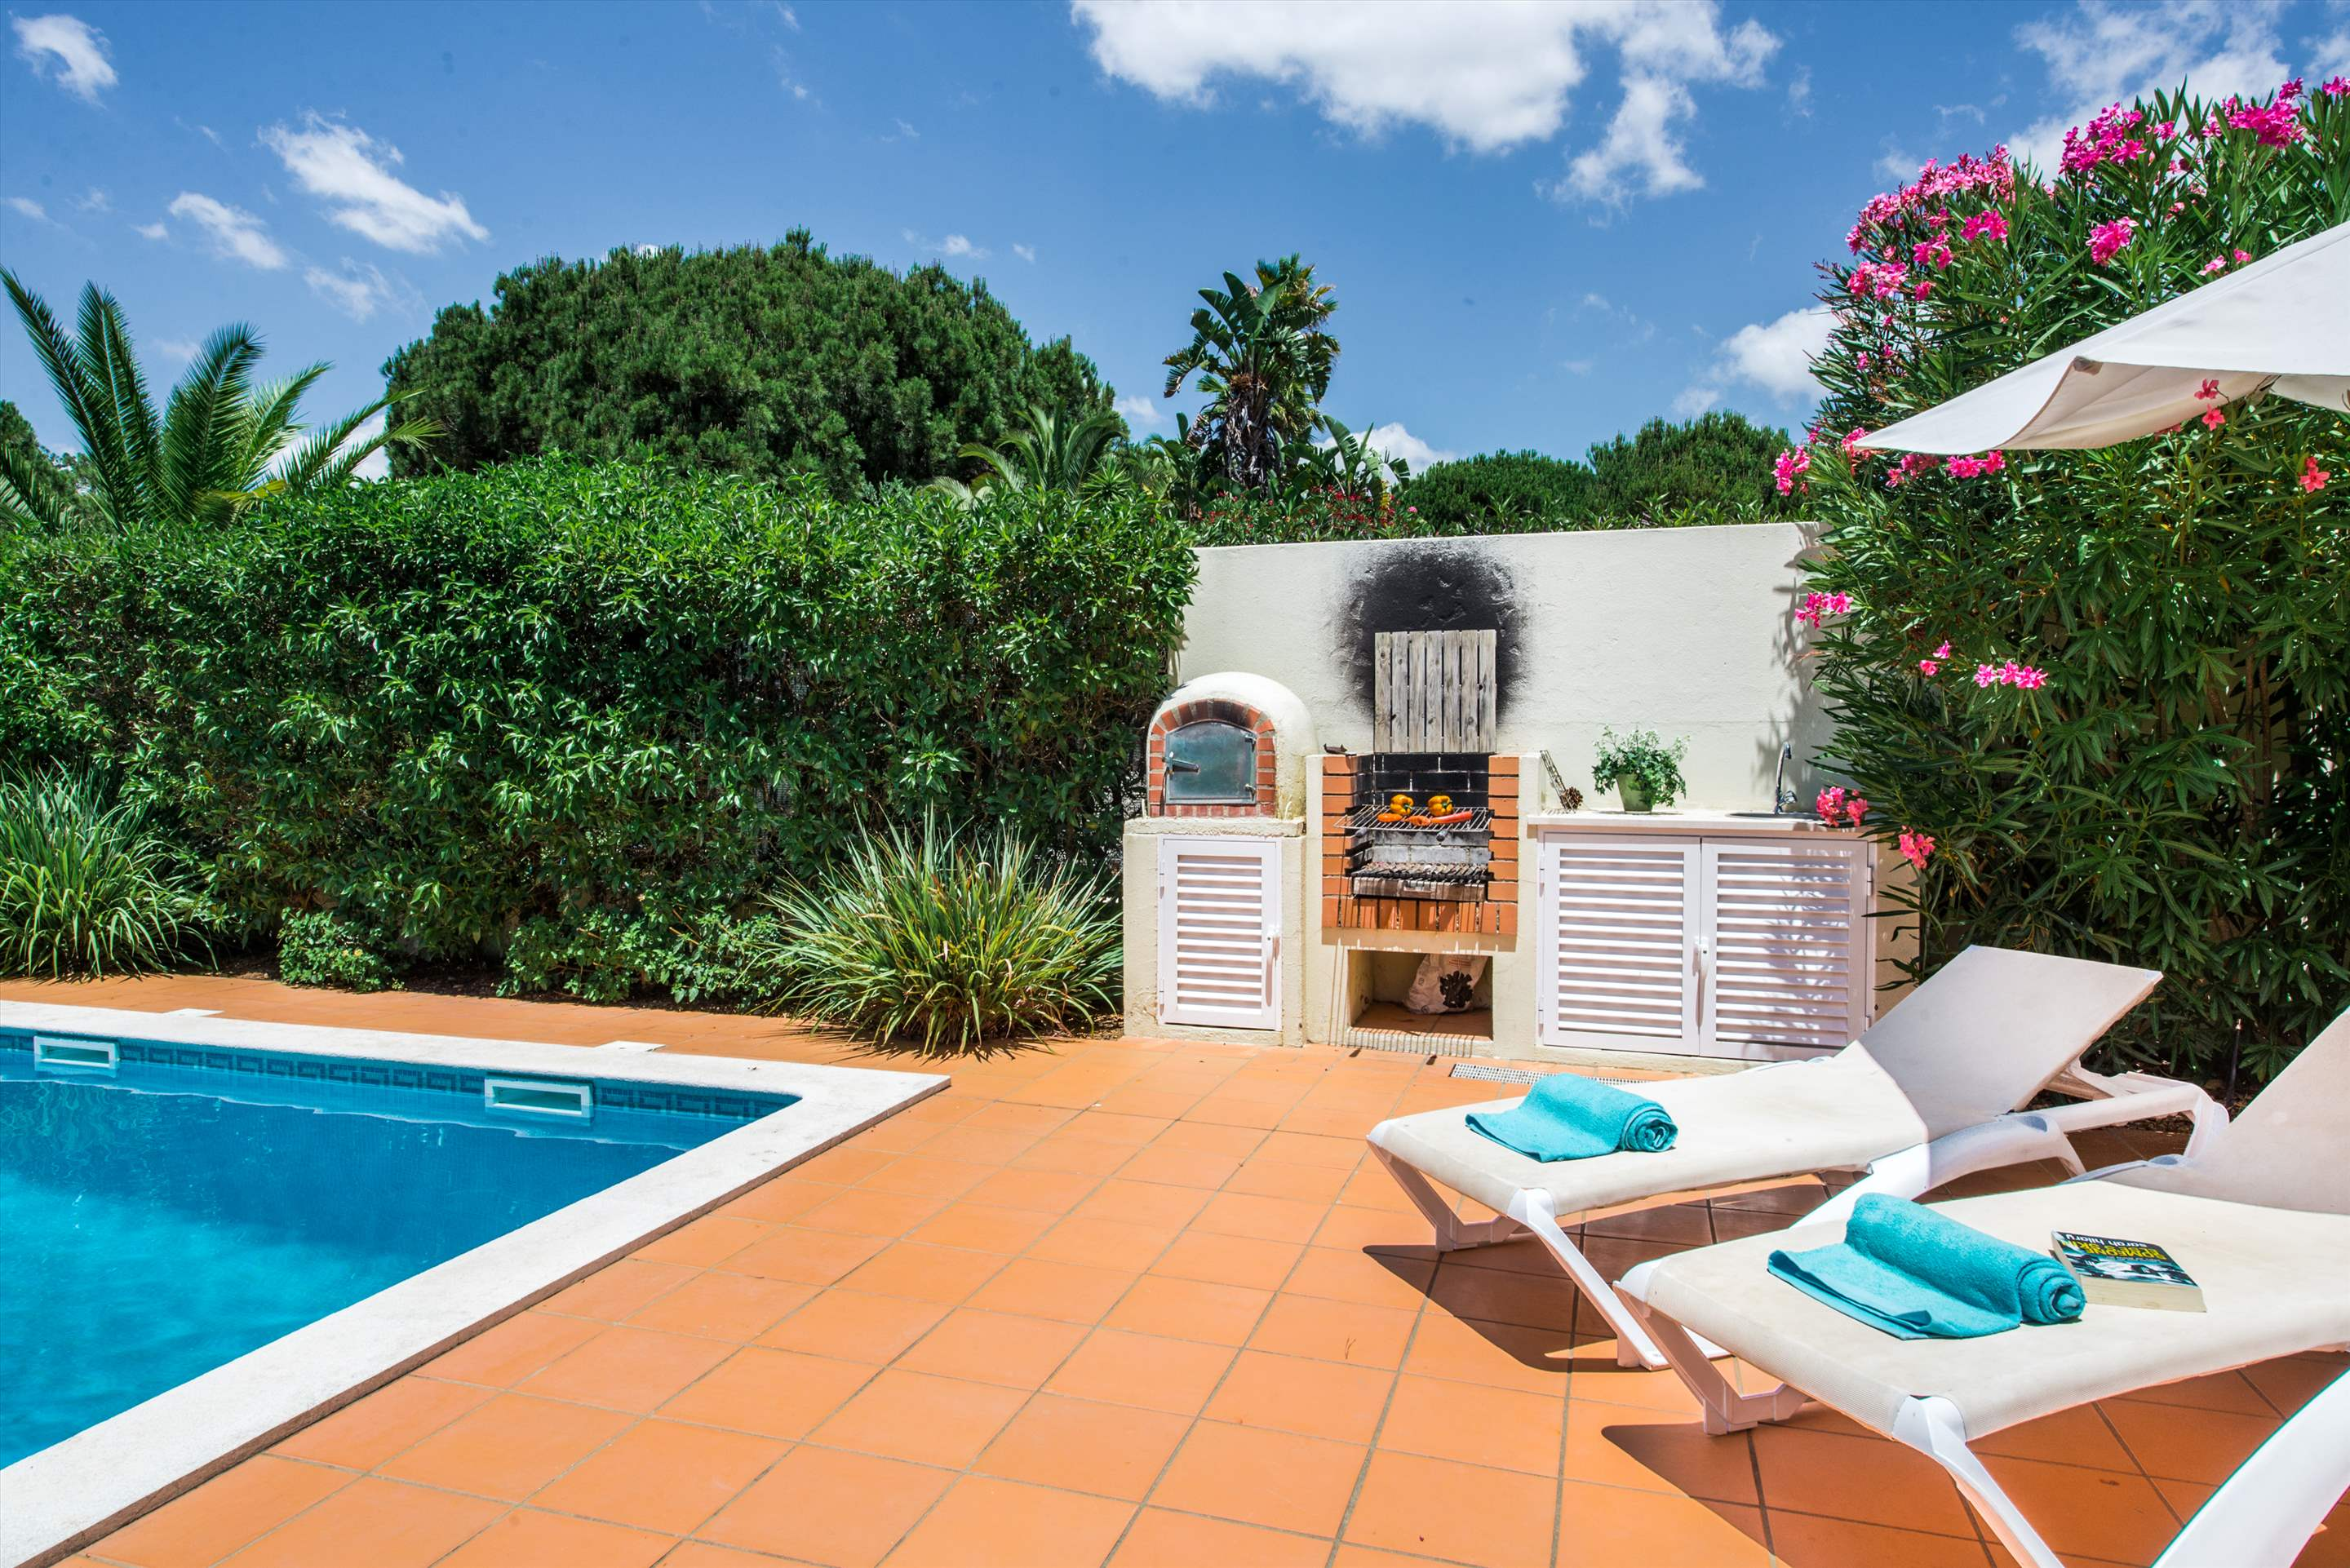 Vivenda Anita 1, 4 bedroom villa in Vilamoura Area, Algarve Photo #13